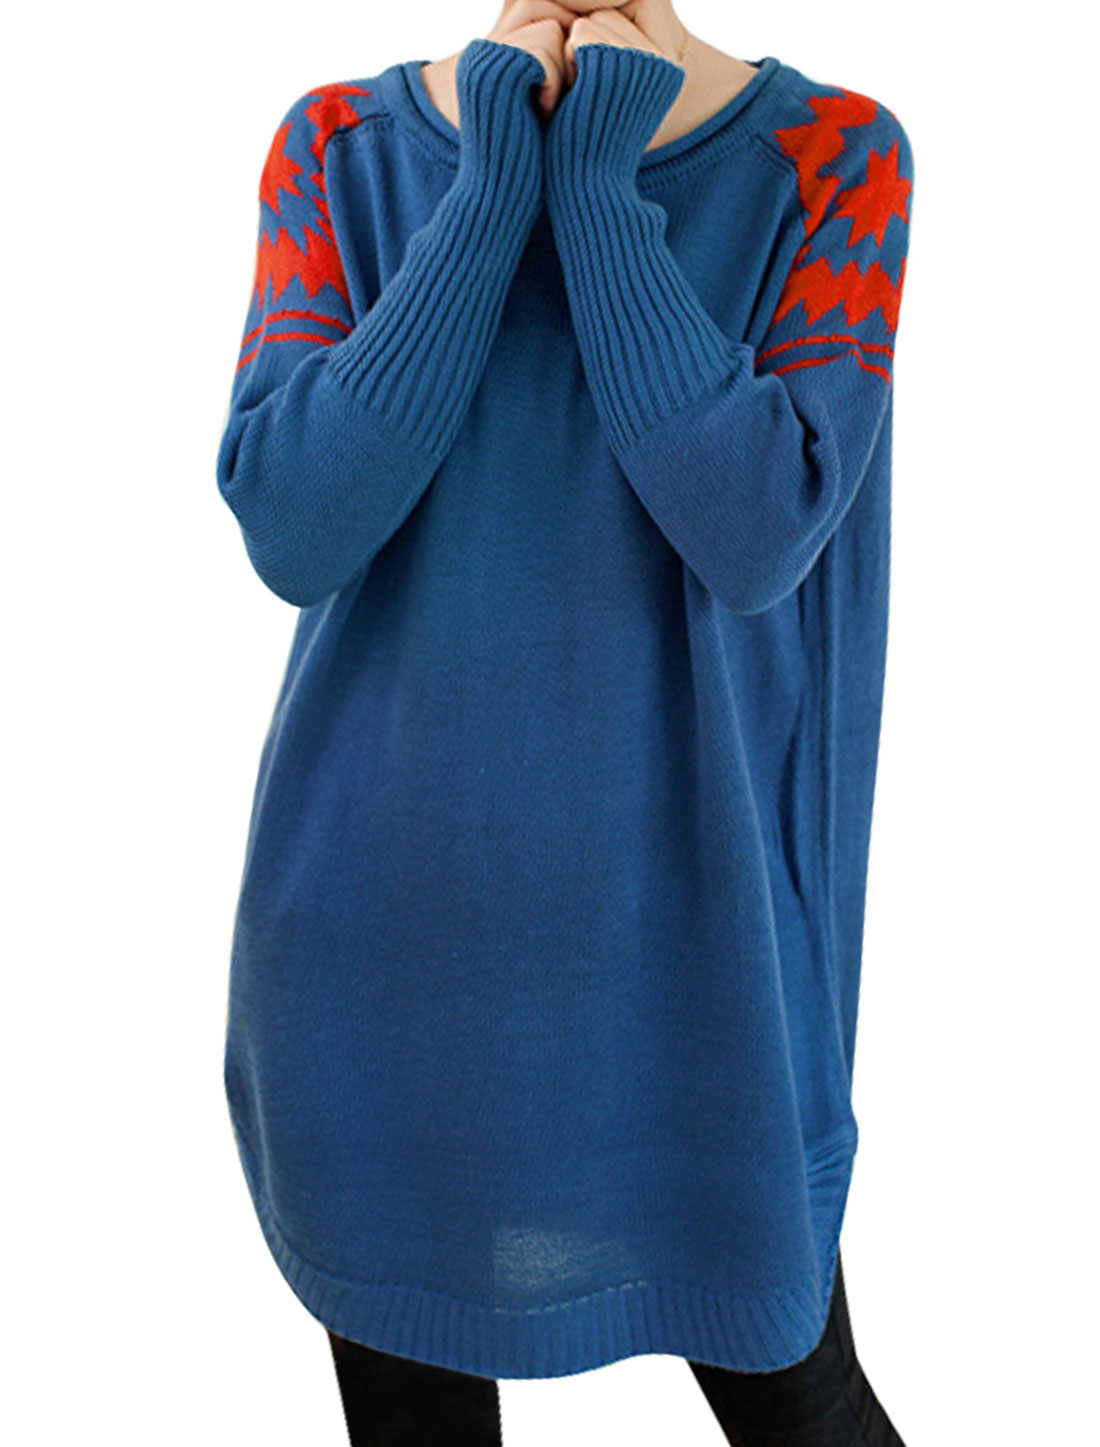 Ladies Blue Round Neck Raglan Sleeves Slipover Leisure Sweater XS